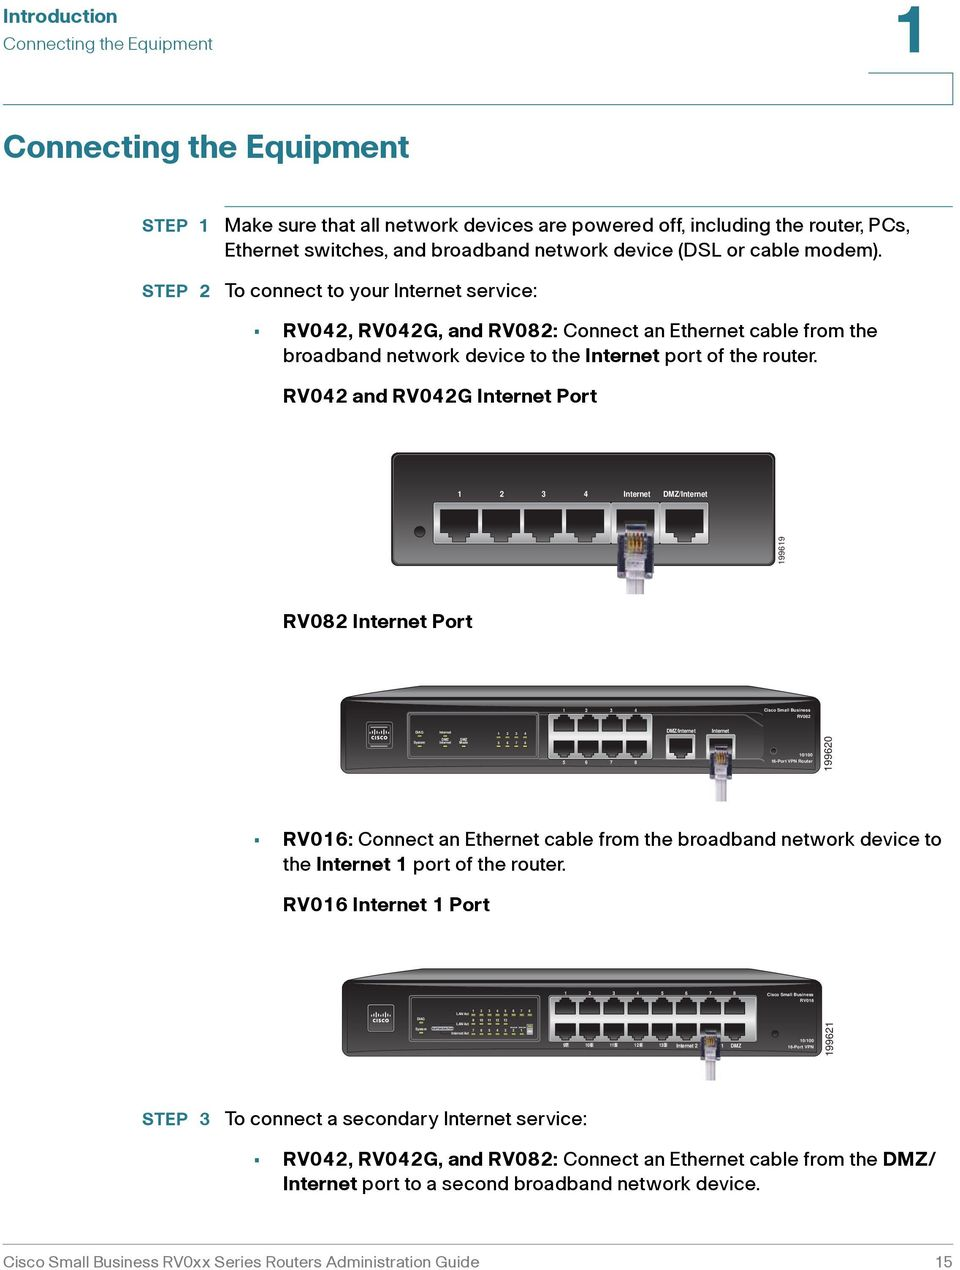 To connect to your Internet service: RV042, RV042G, and RV082: Connect an Ethernet cable from the broadband network device to the Internet port of the router.